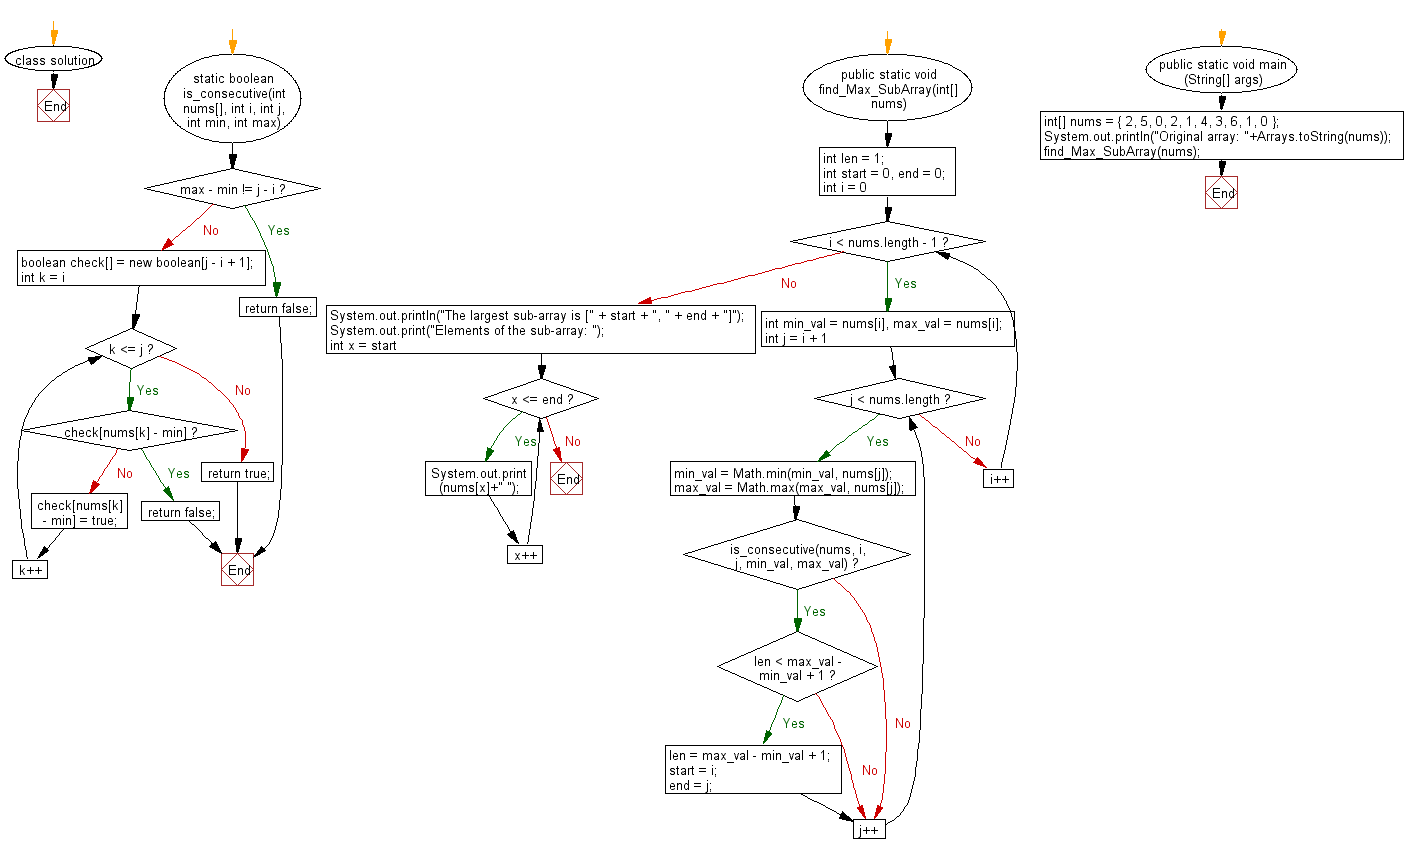 Flowchart: Check if a sub-array is formed by consecutive integers from a given array of integers